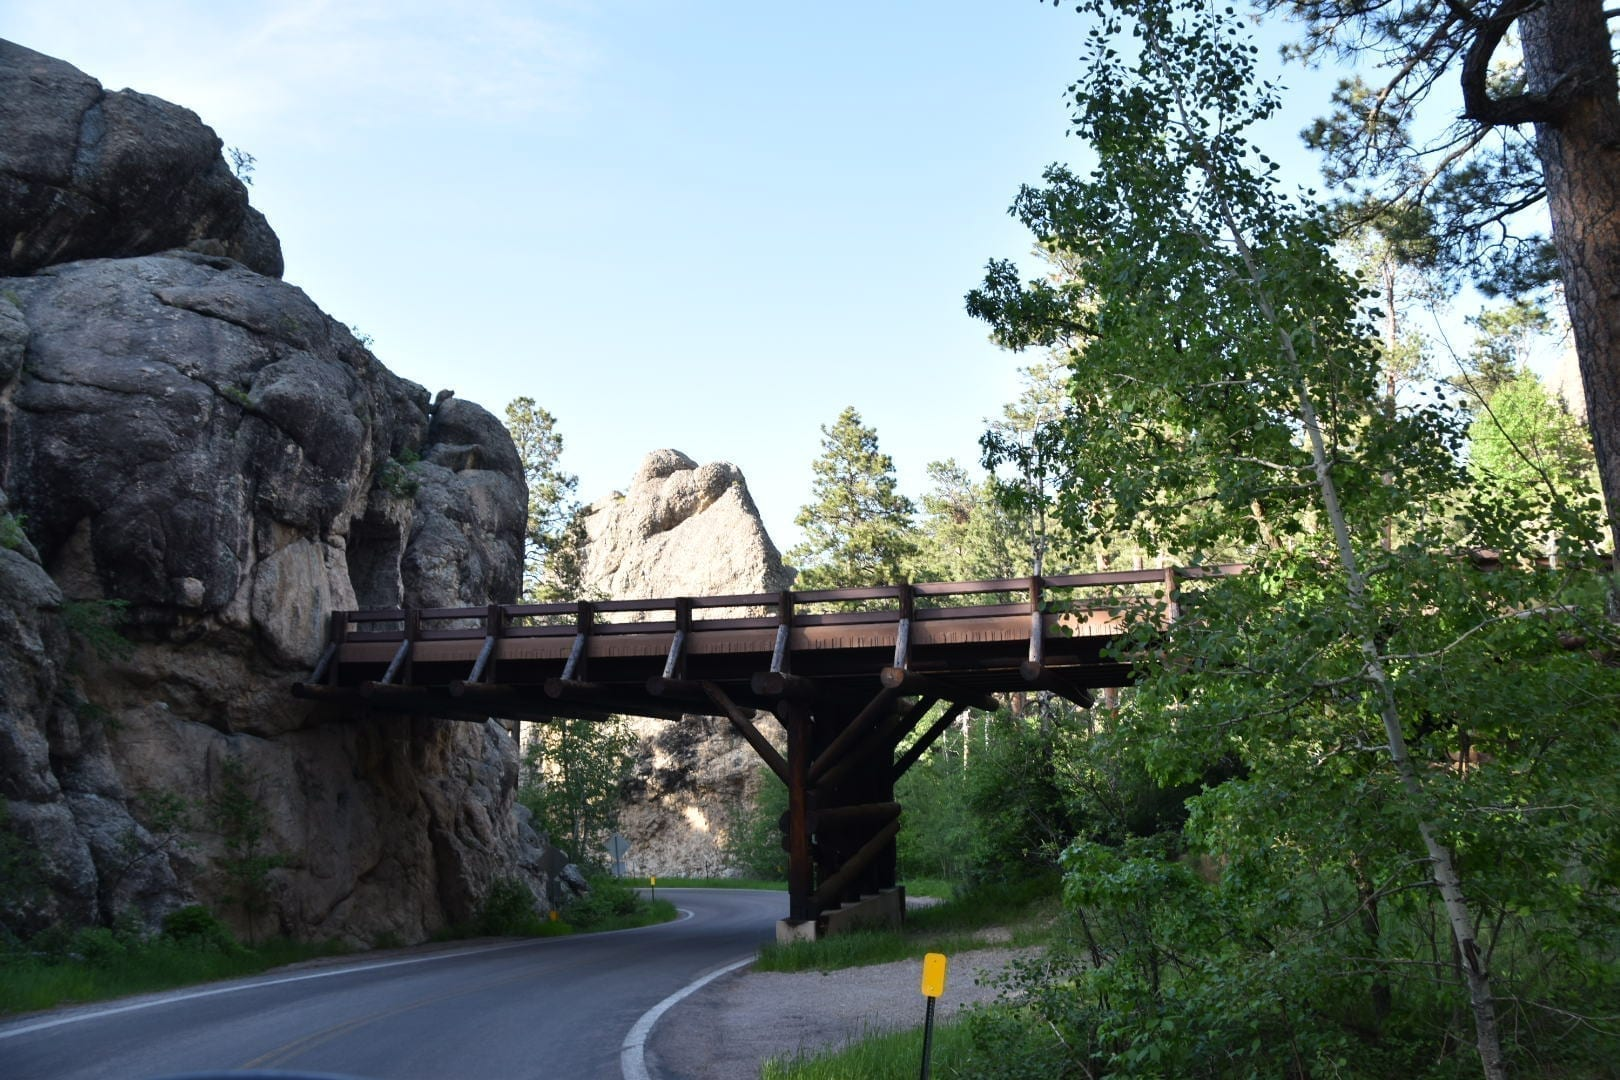 Ironman Highway at Custer State Park